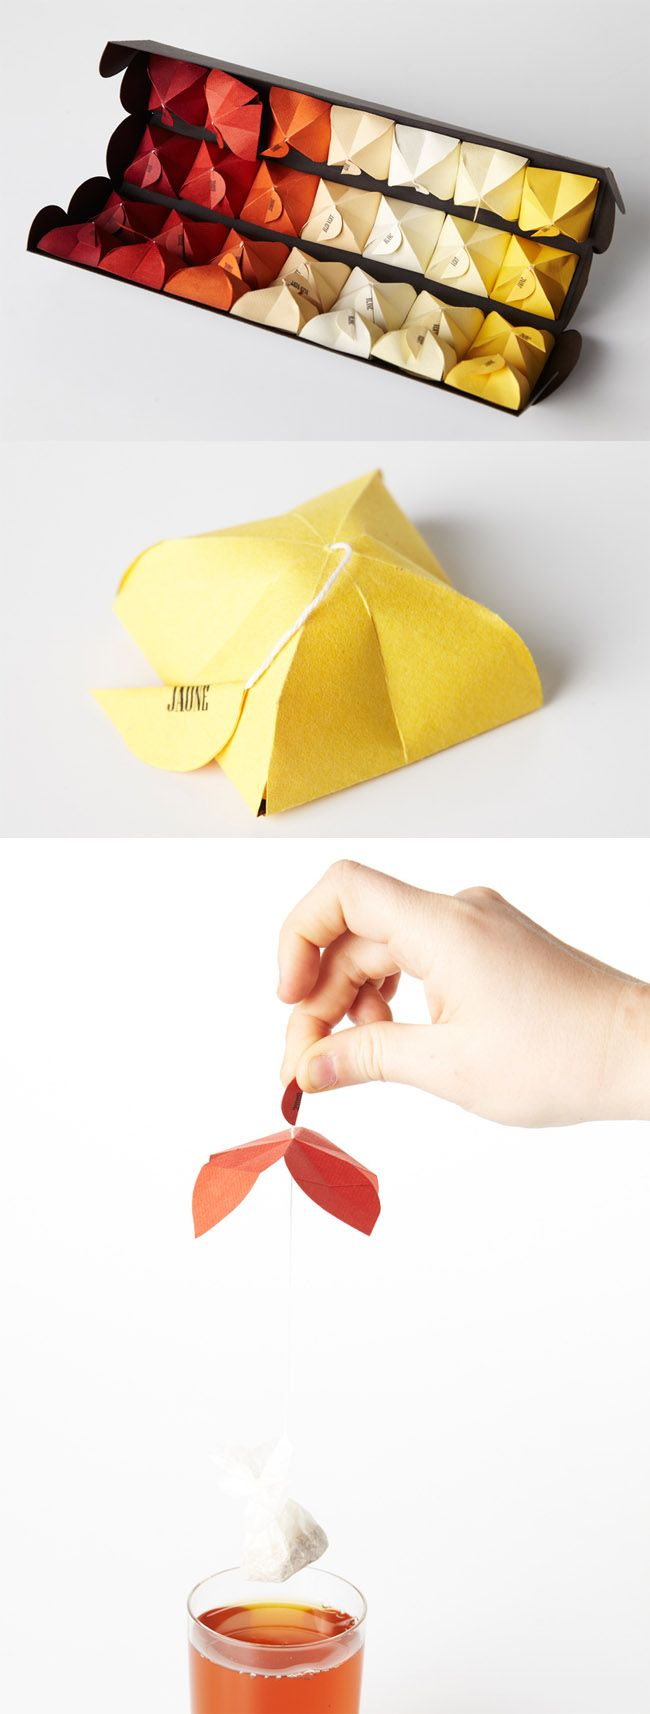 Origami Tea Packaging Maria Milagros Rodriguez Bouroncle